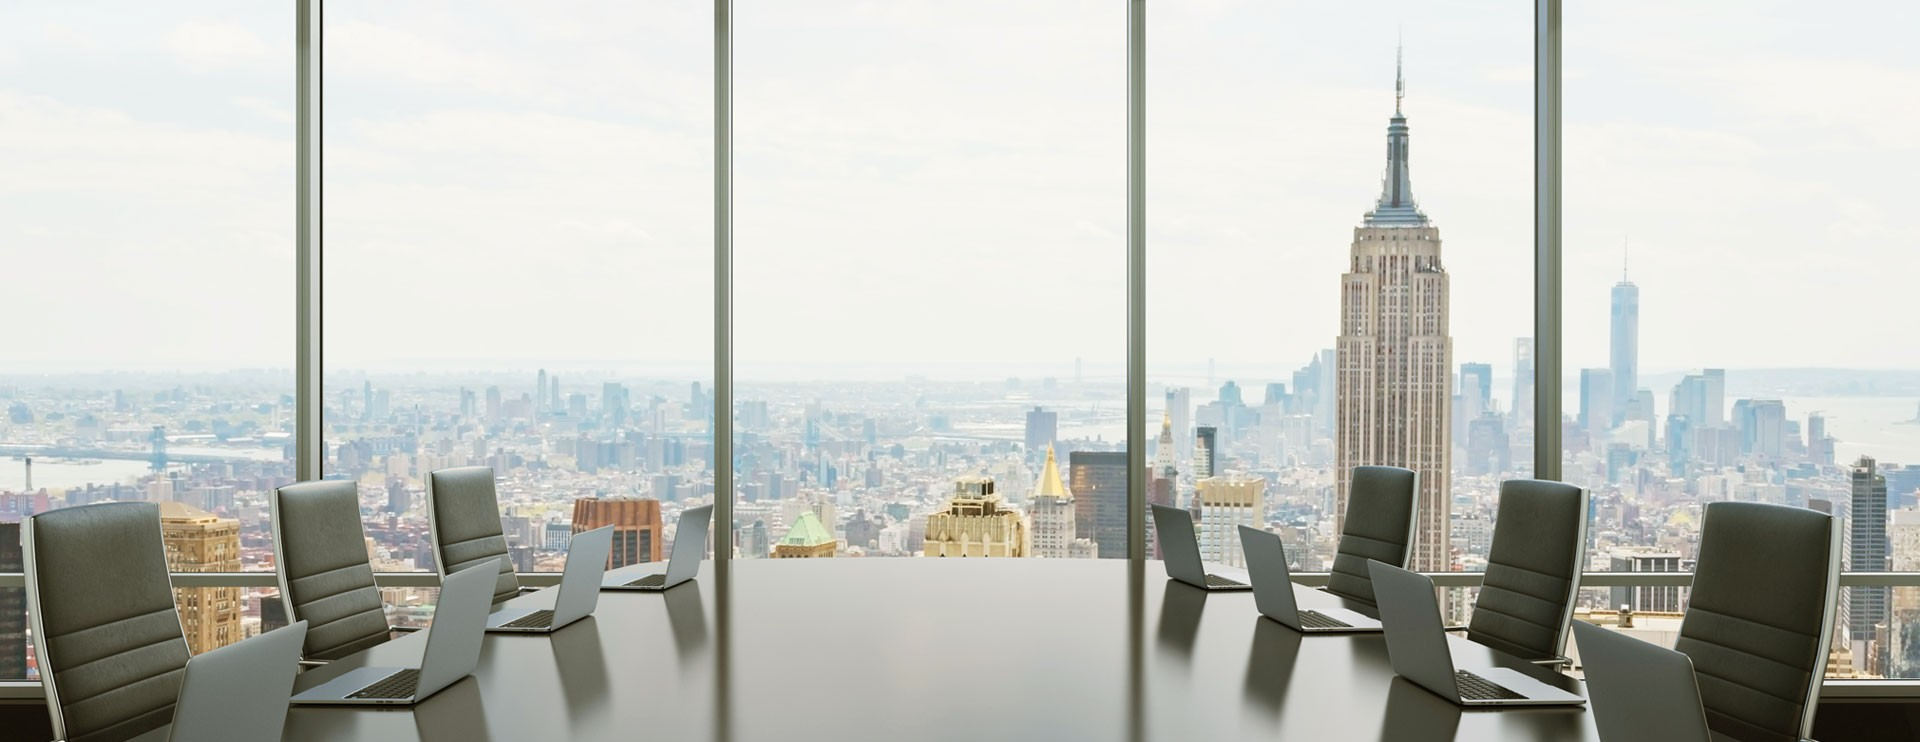 A meeting room with city view